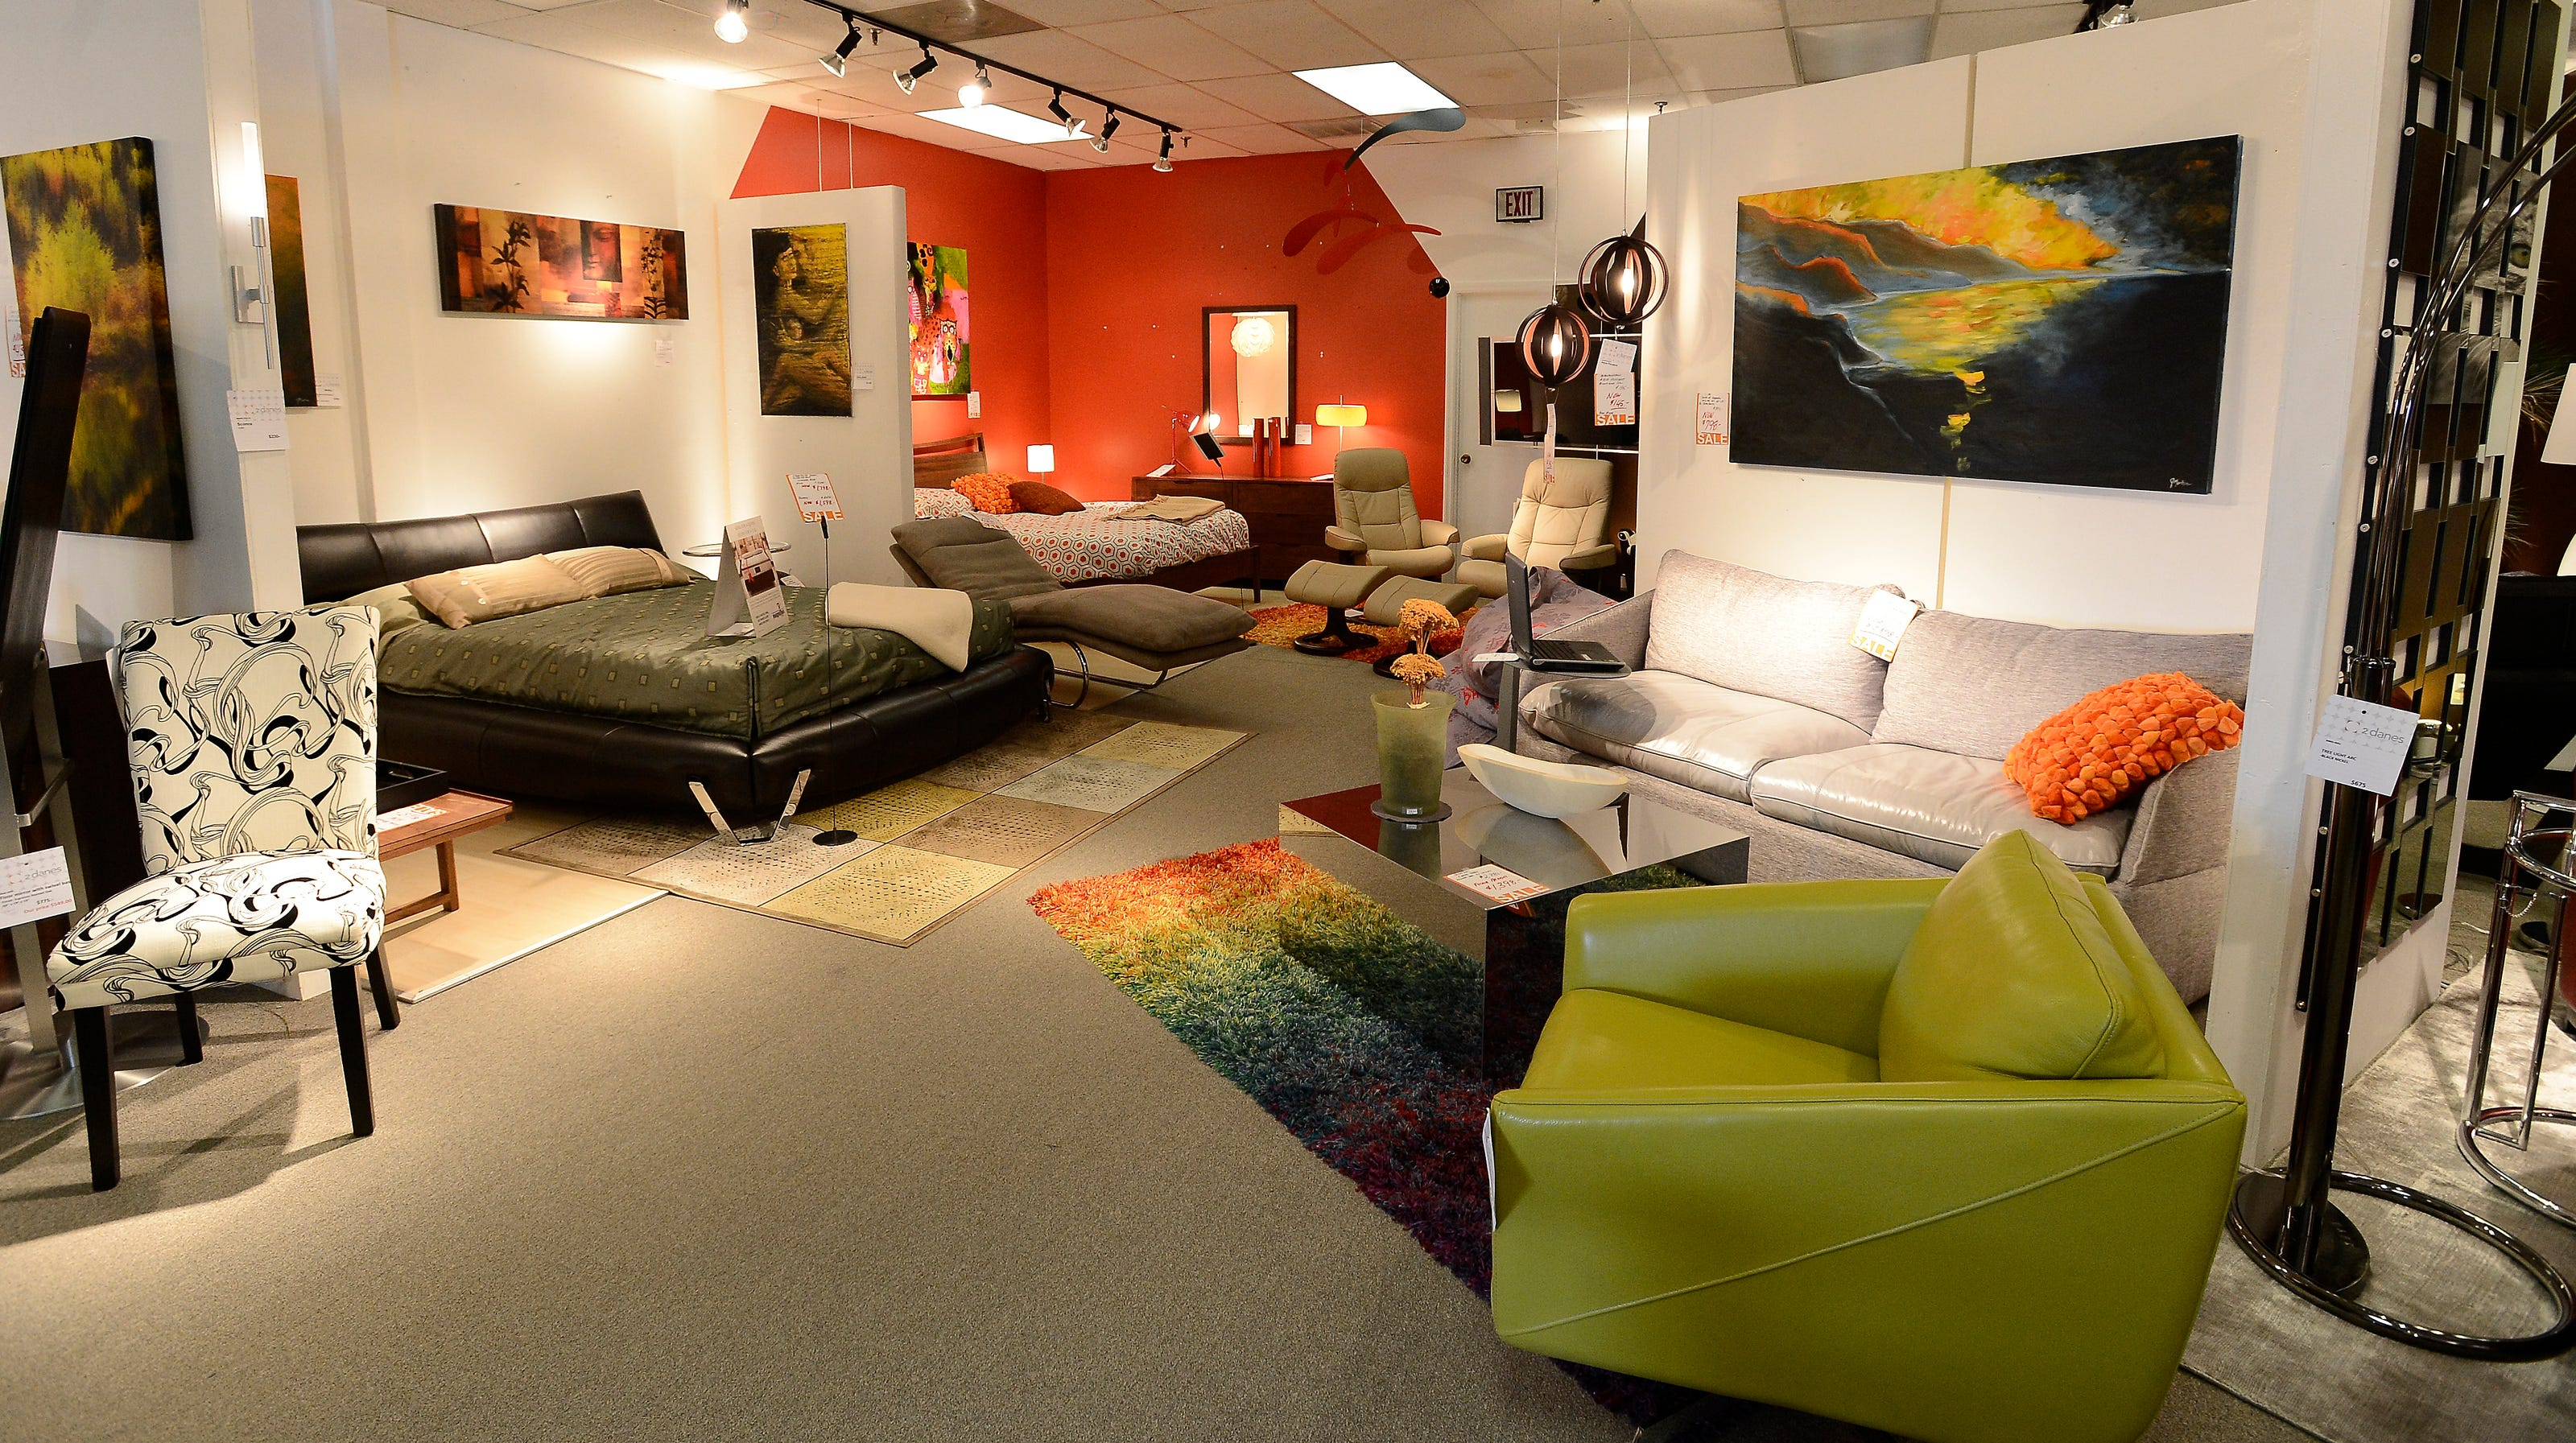 10 Fabulous Nashville Area Furniture Stores To Help You Redecorate